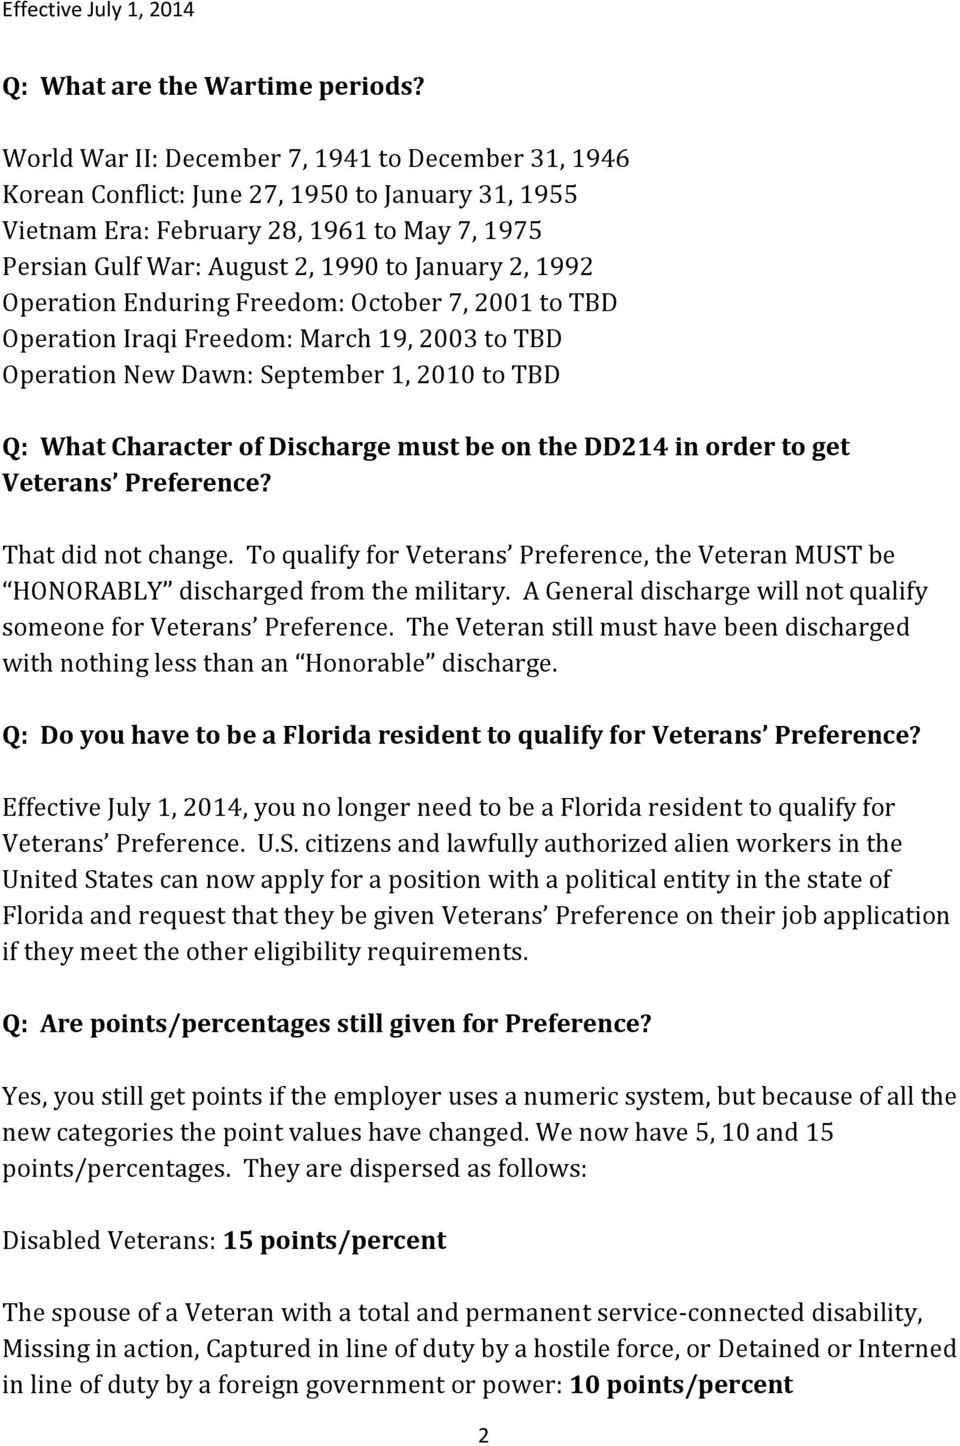 1992 Operation Enduring Freedom: October 7, 2001 to TBD Operation Iraqi Freedom: March 19, 2003 to TBD Operation New Dawn: September 1, 2010 to TBD Q: What Character of Discharge must be on the DD214